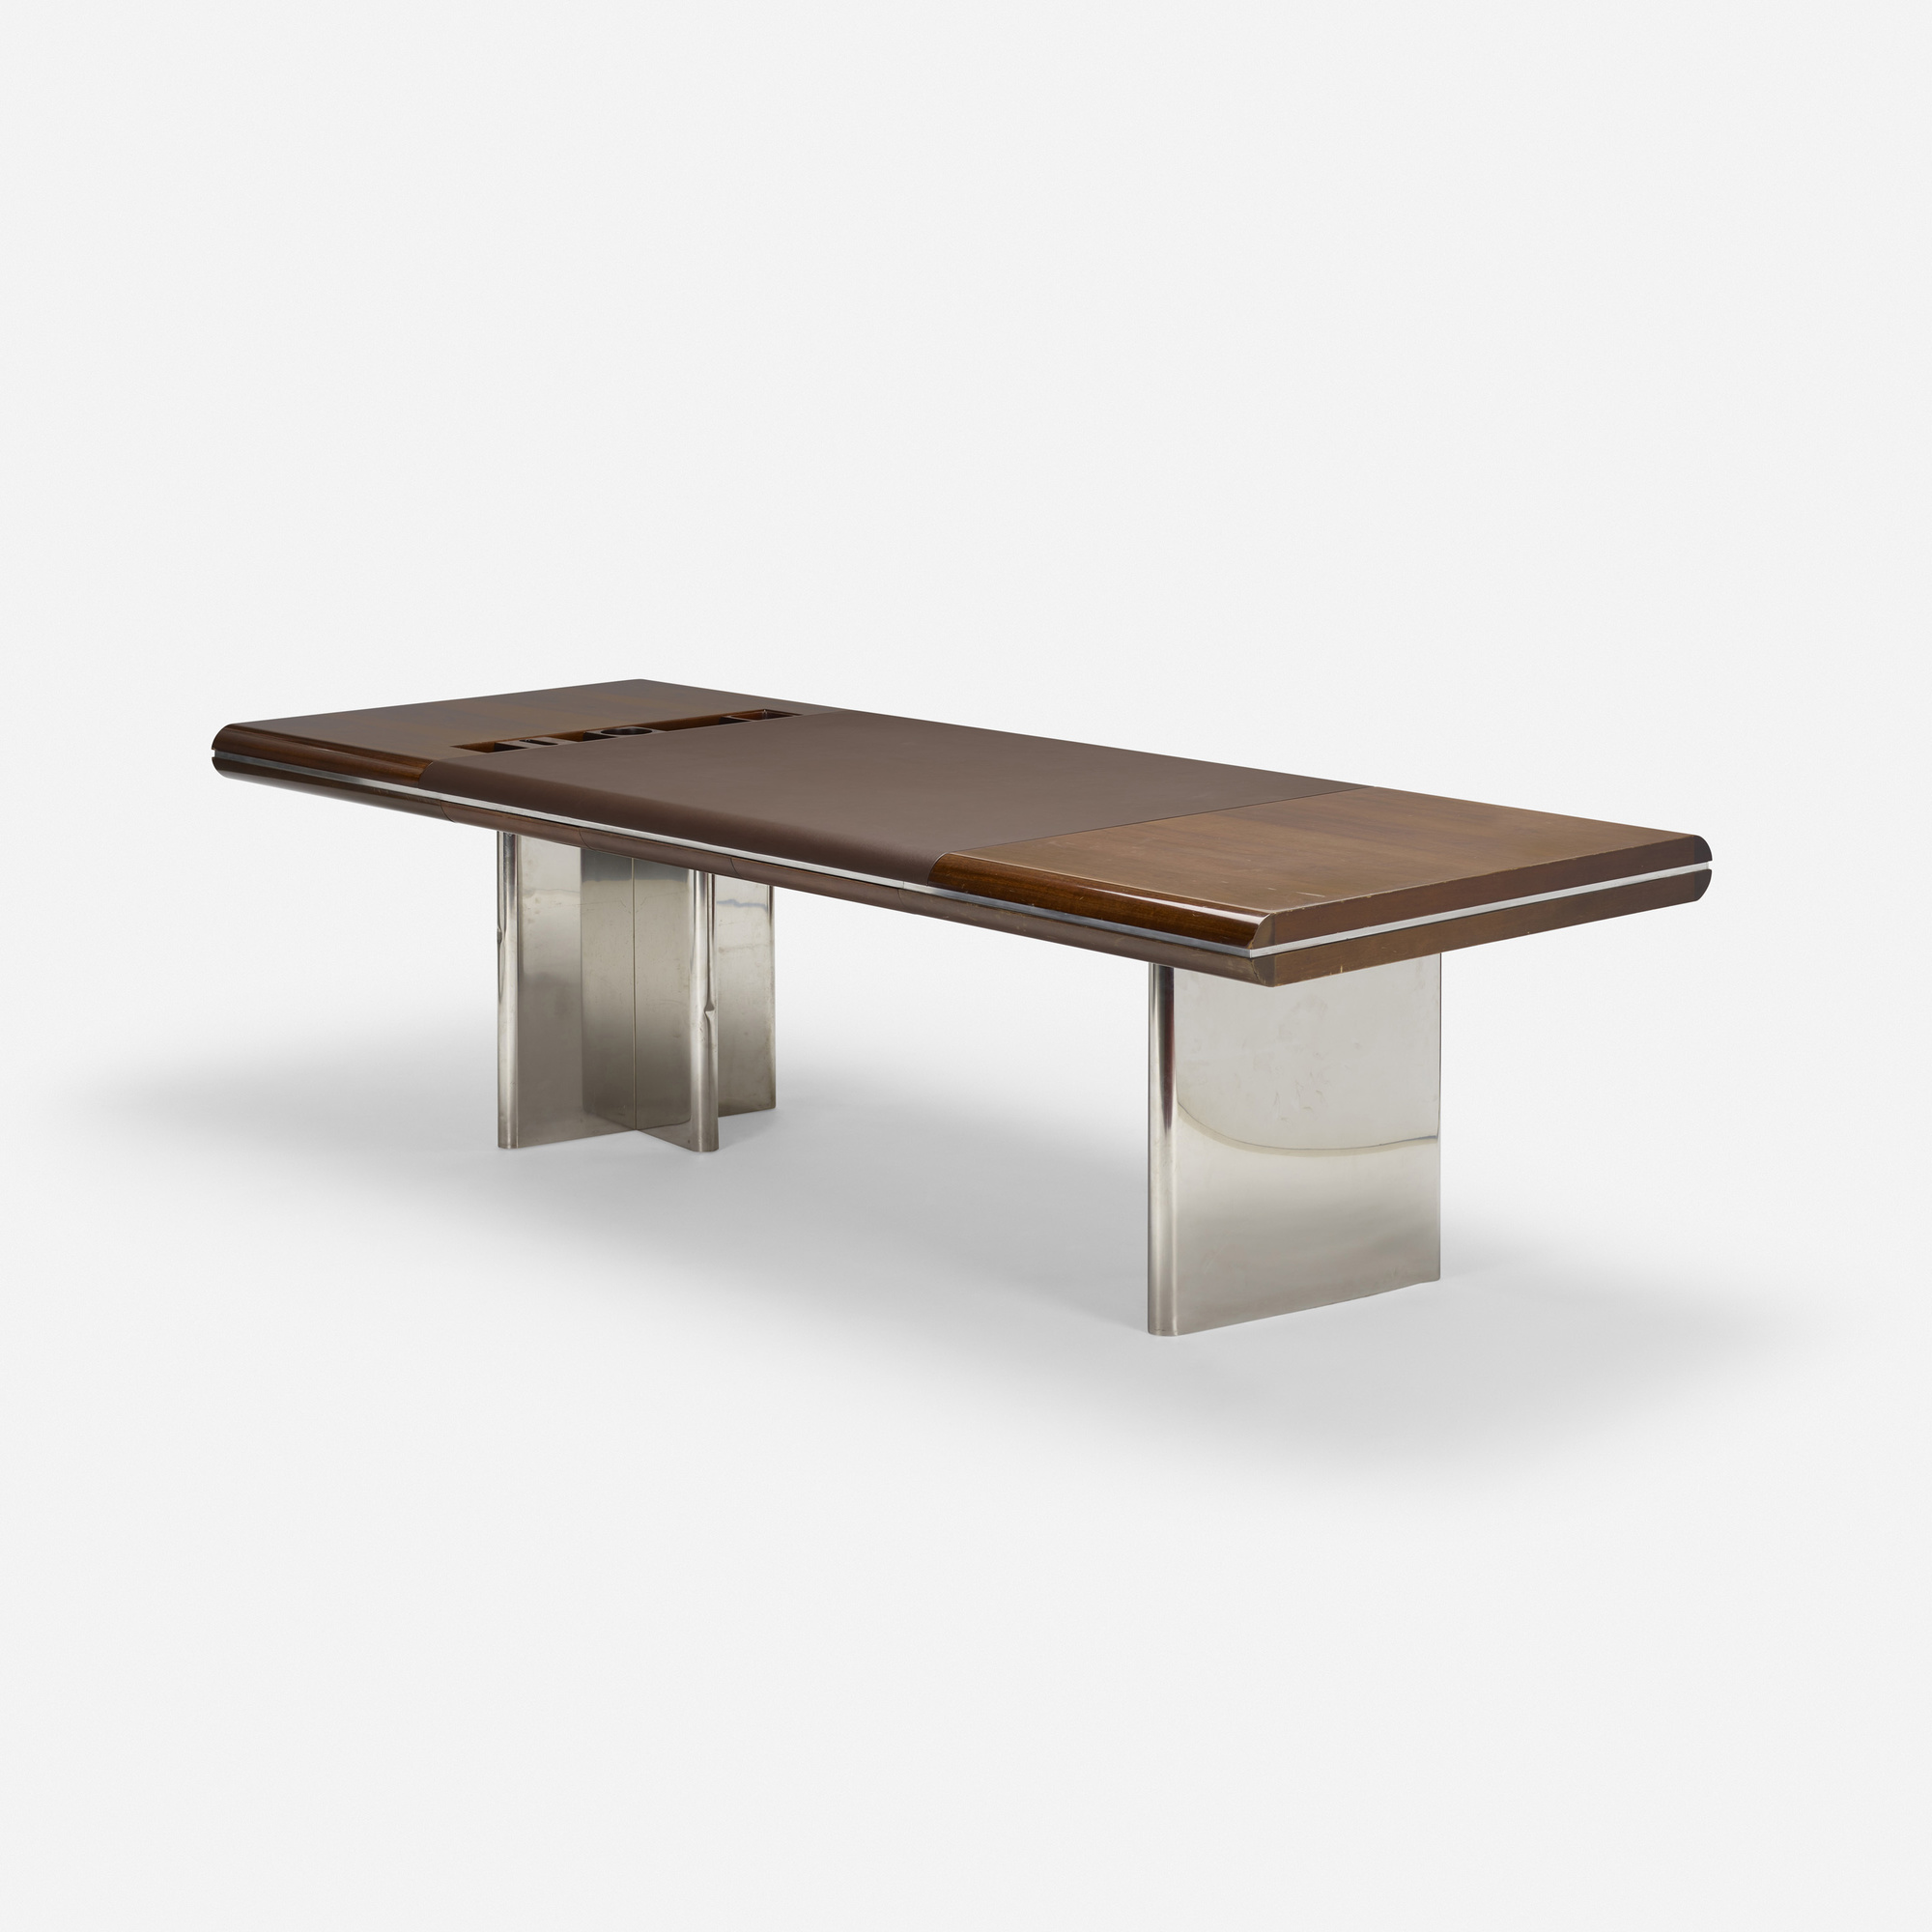 779: Hans Von Klier / desk (1 of 1)